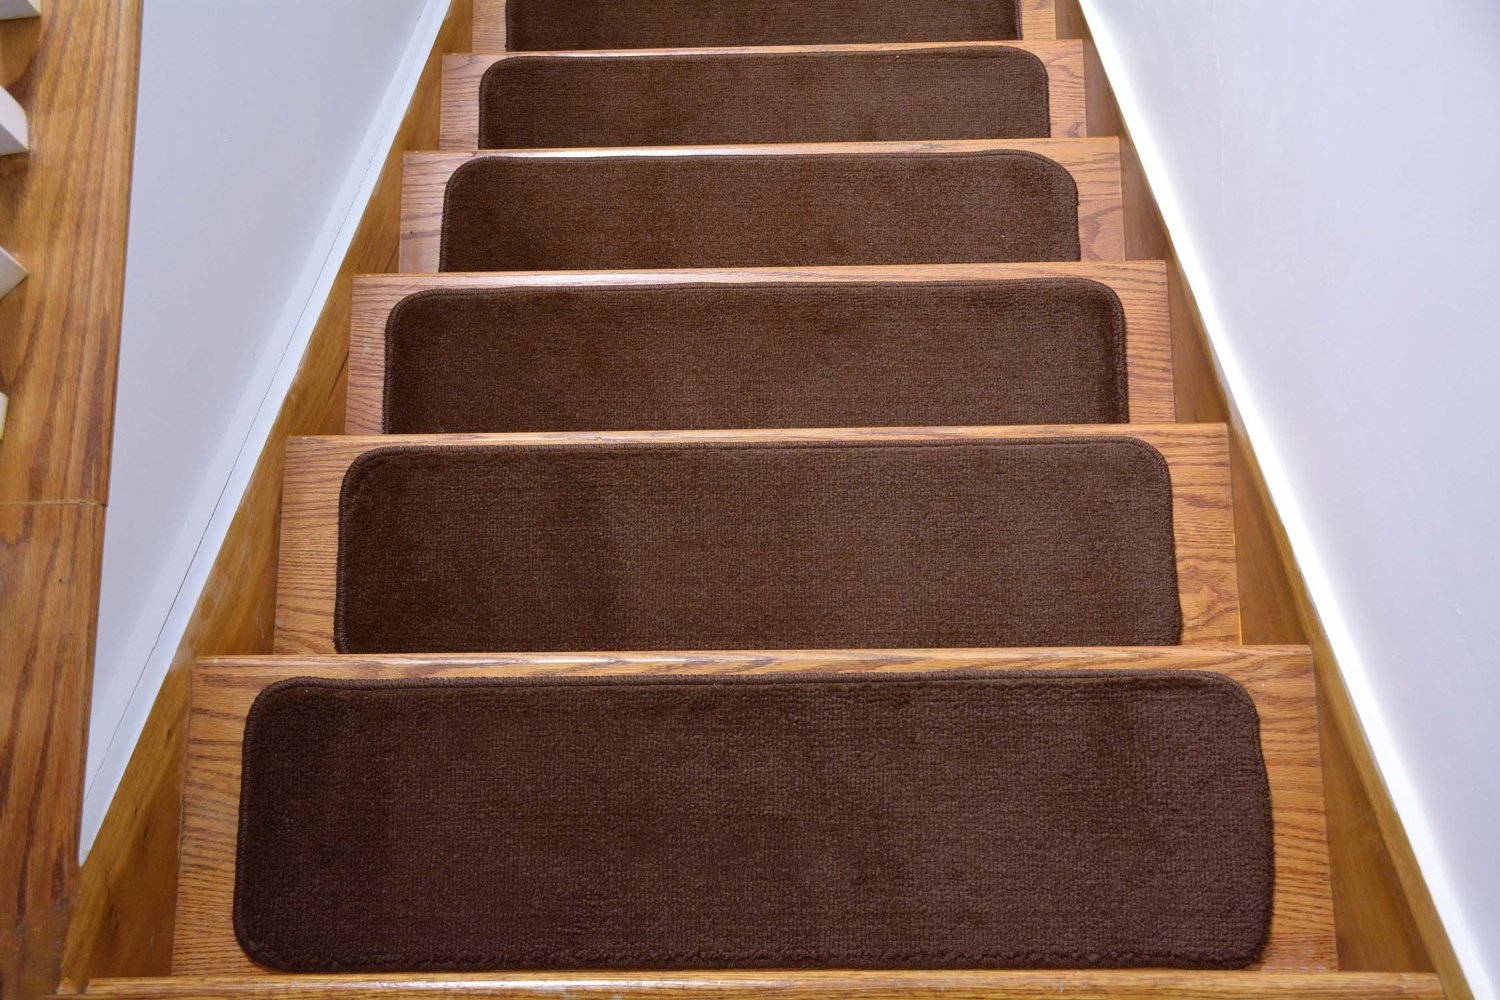 Comfy Collection Stair Tread Treads Indoor Skid Slip Resistant Throughout Skid Resistant Stair Treads (View 4 of 15)